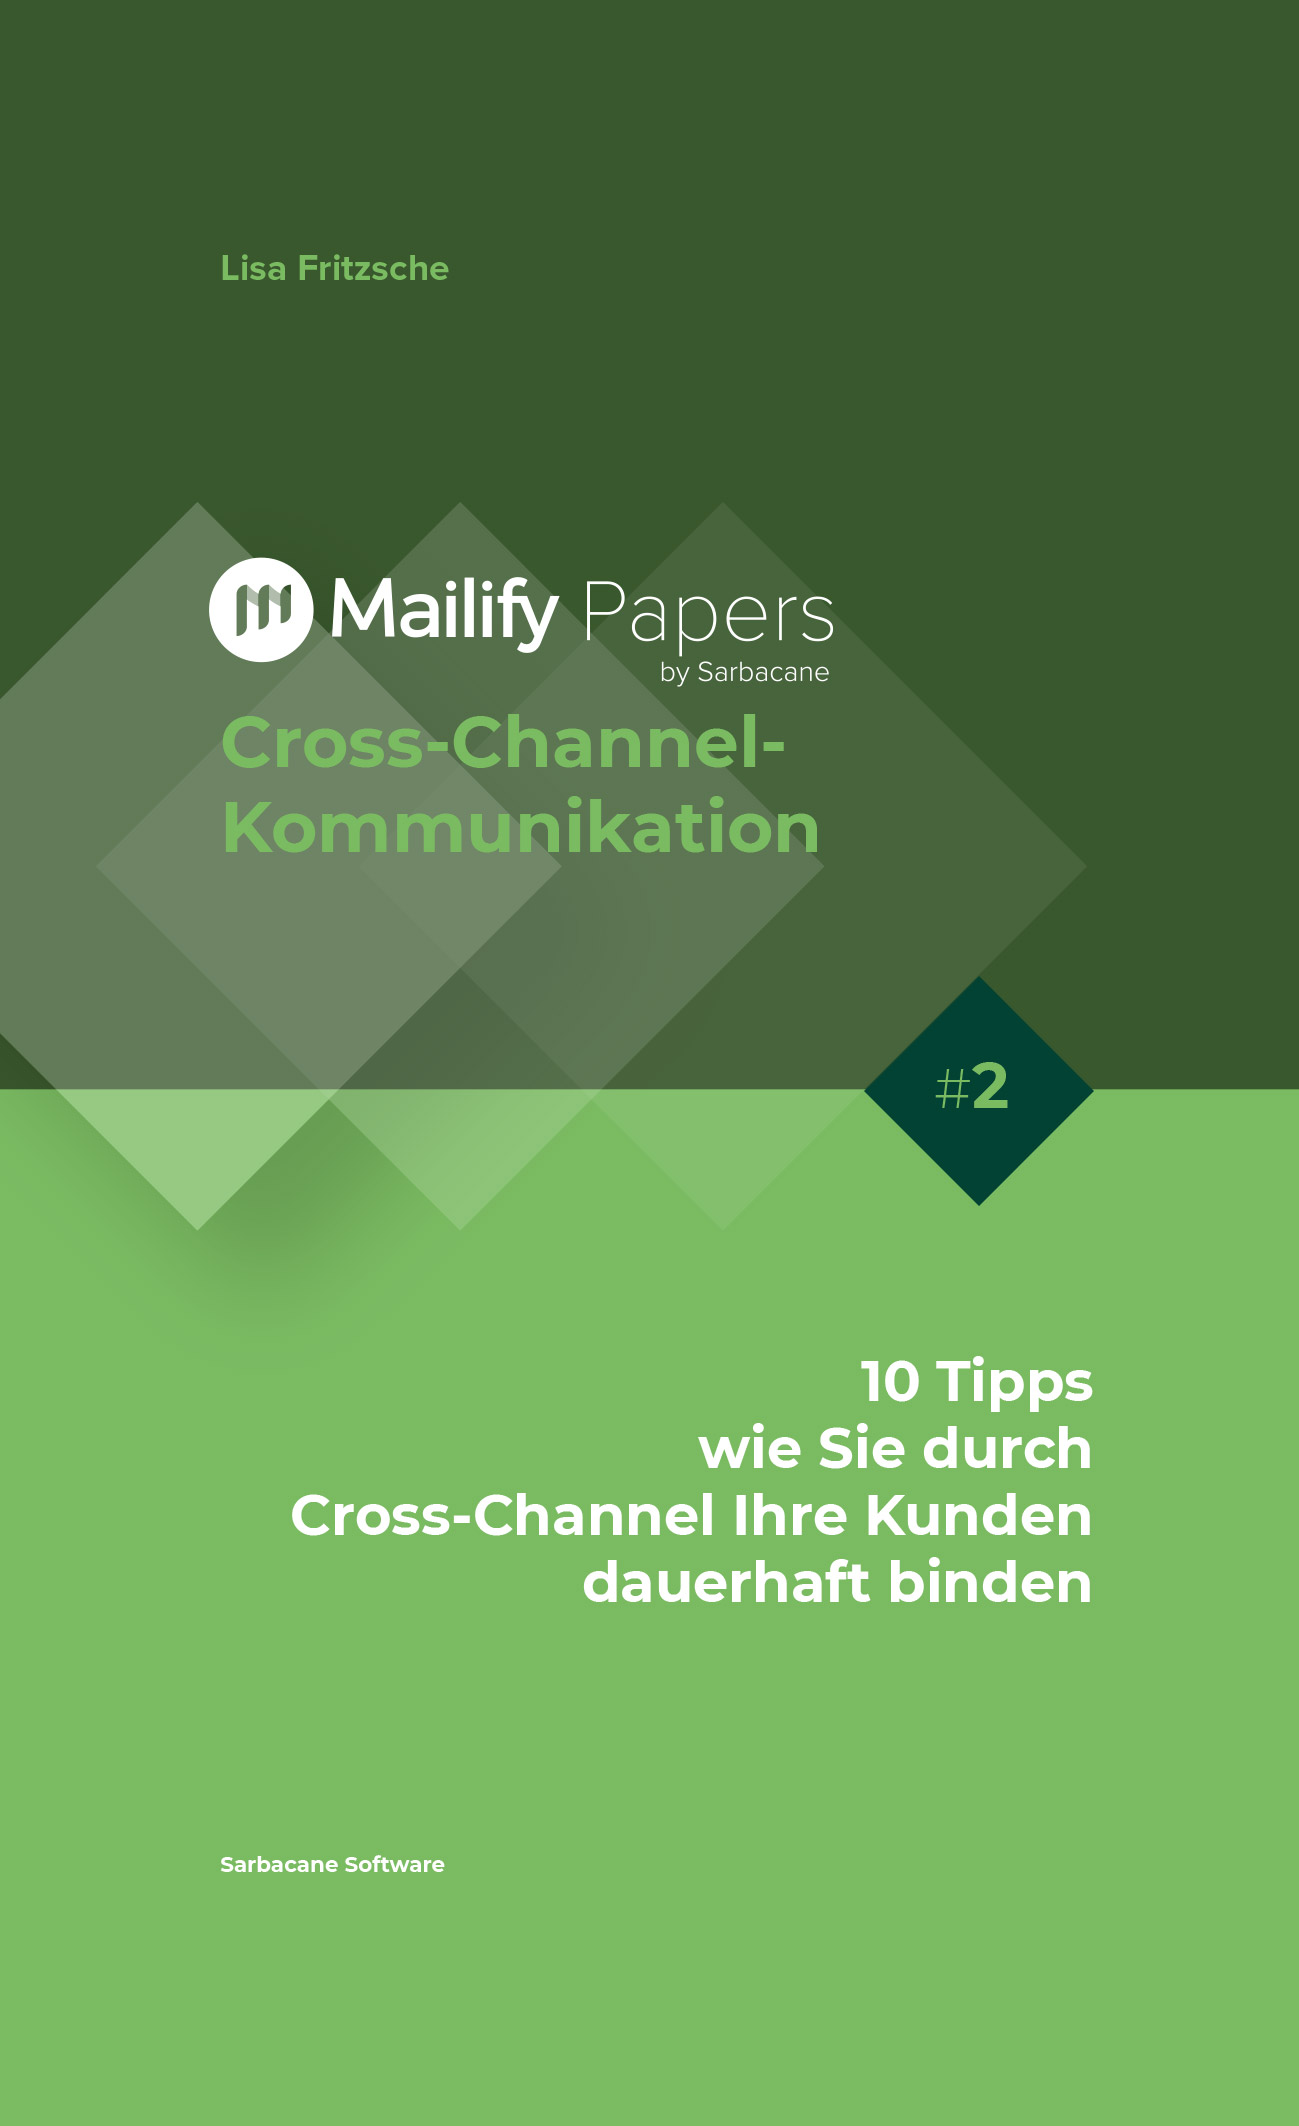 Cross-Channel-Kommunikation